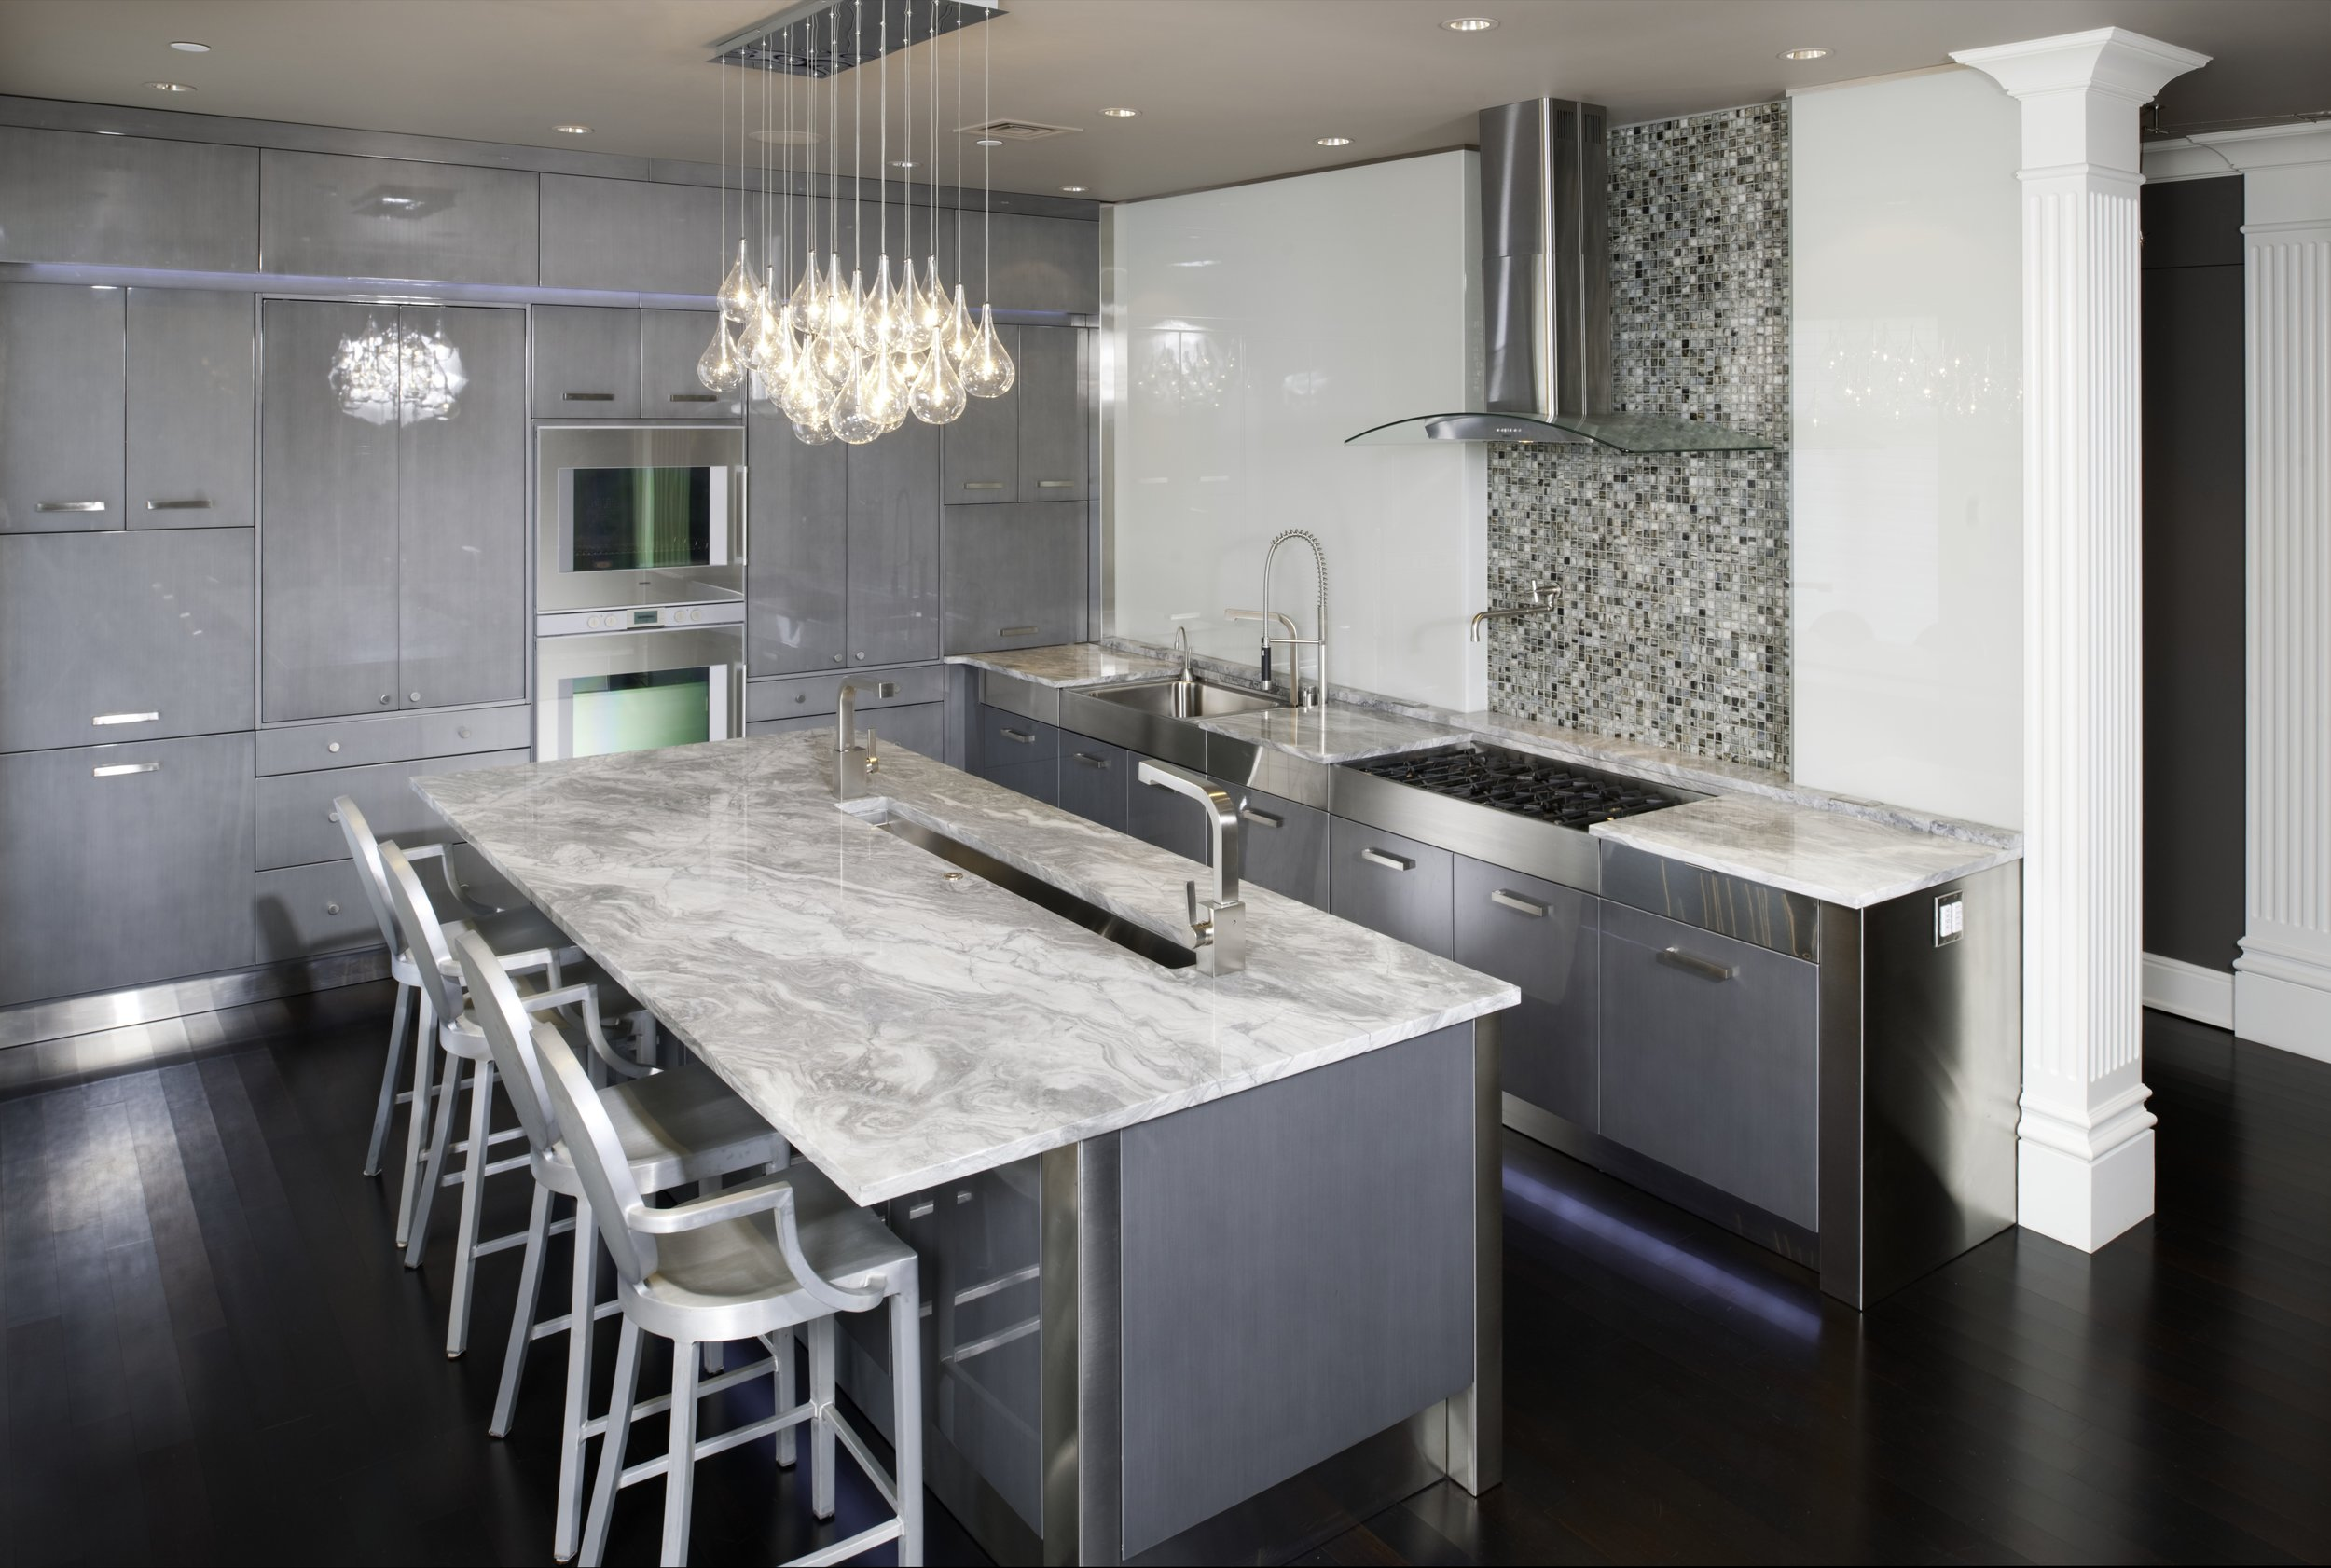 KBC_kitchen_bath_concepts_Kitchen_11.jpg